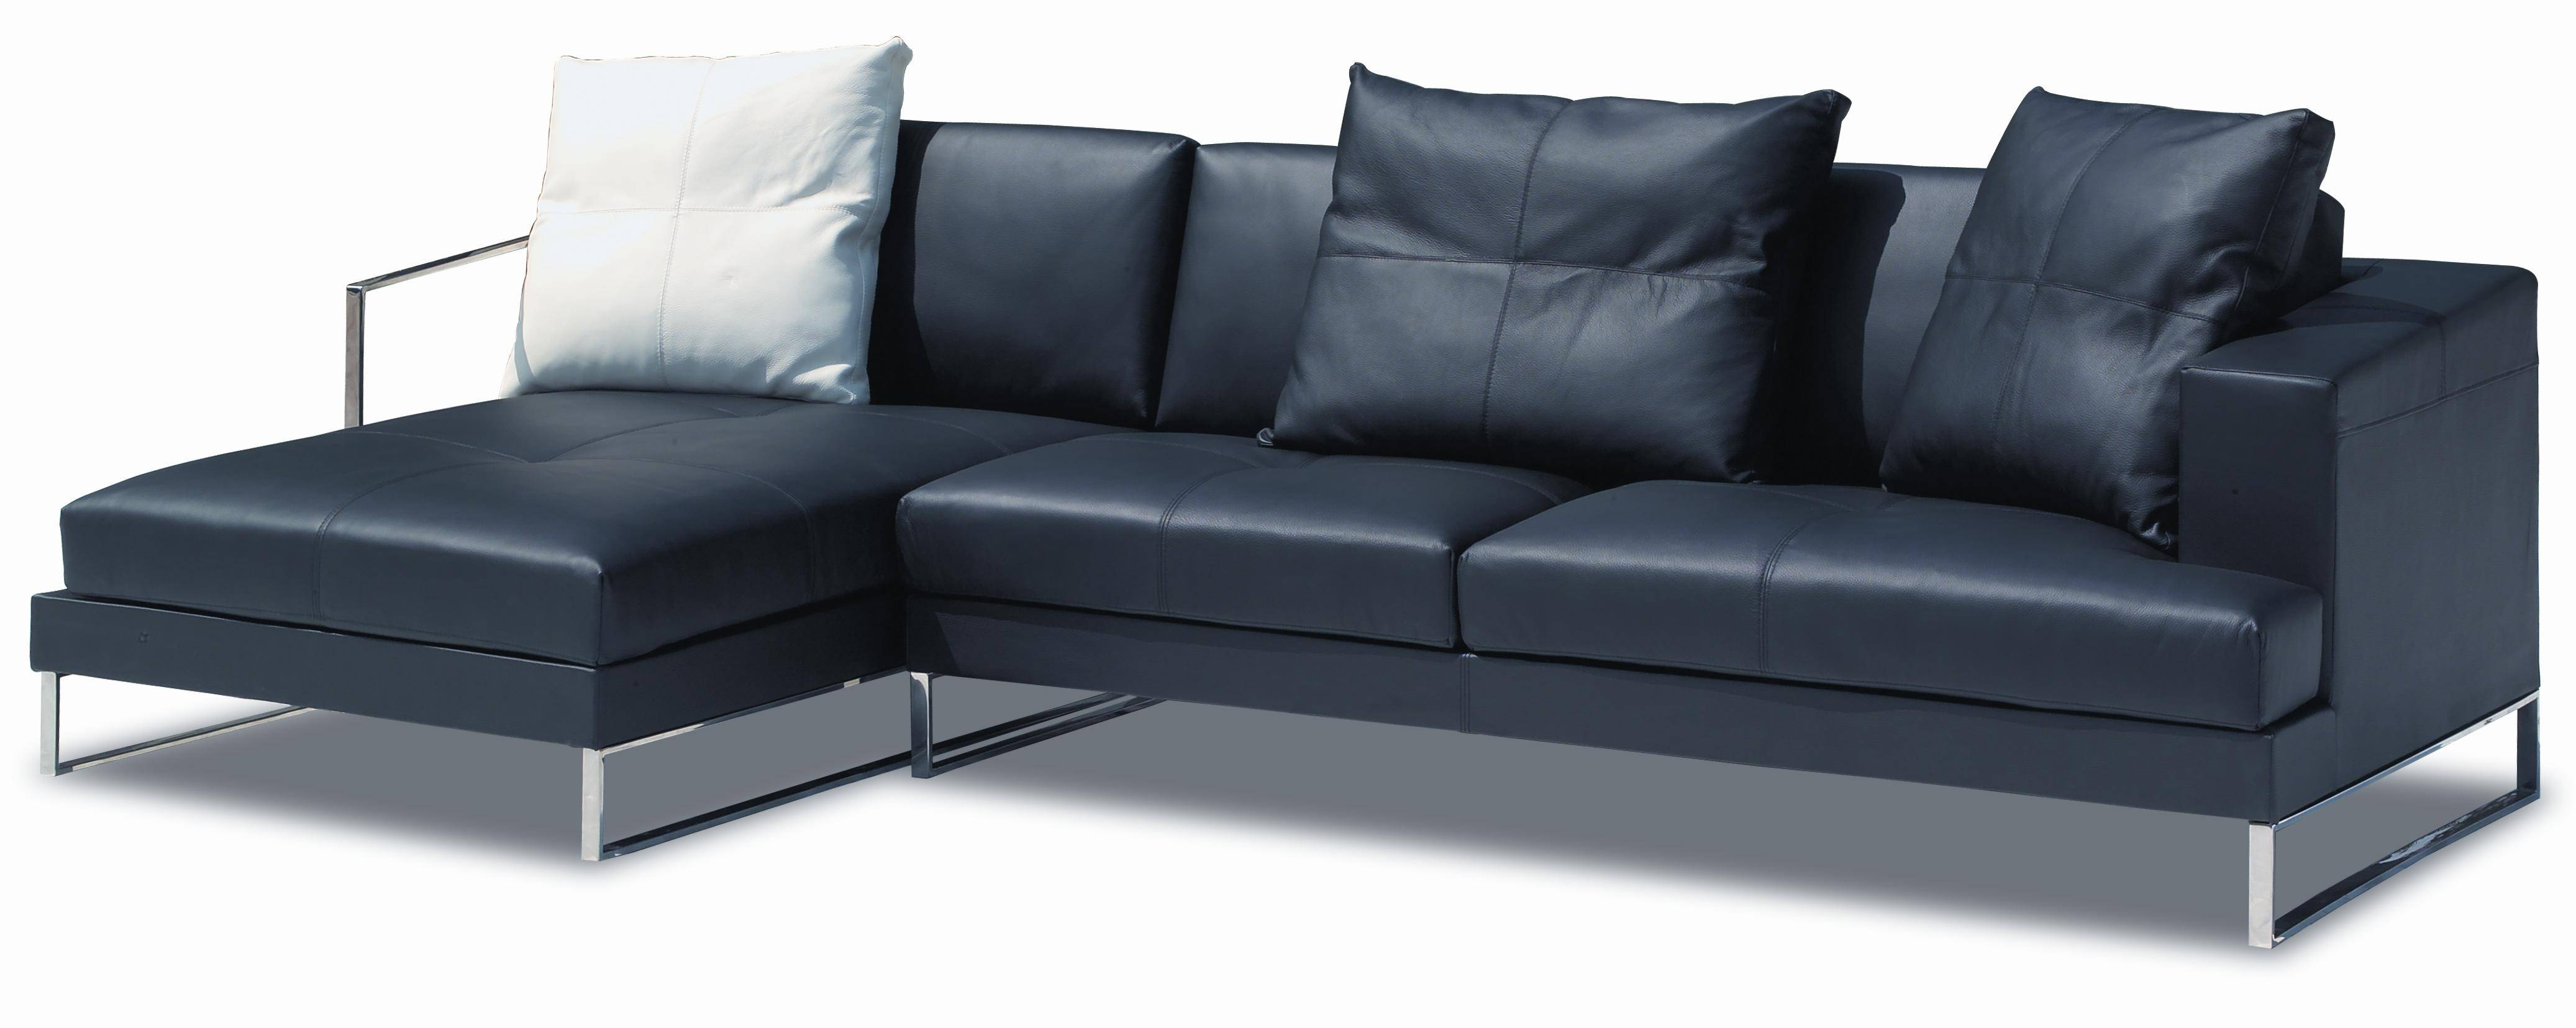 Inspiration Idea Black Leather Sofa With Chaise And Corner Sofas with Black Leather Corner Sofas (Image 10 of 15)